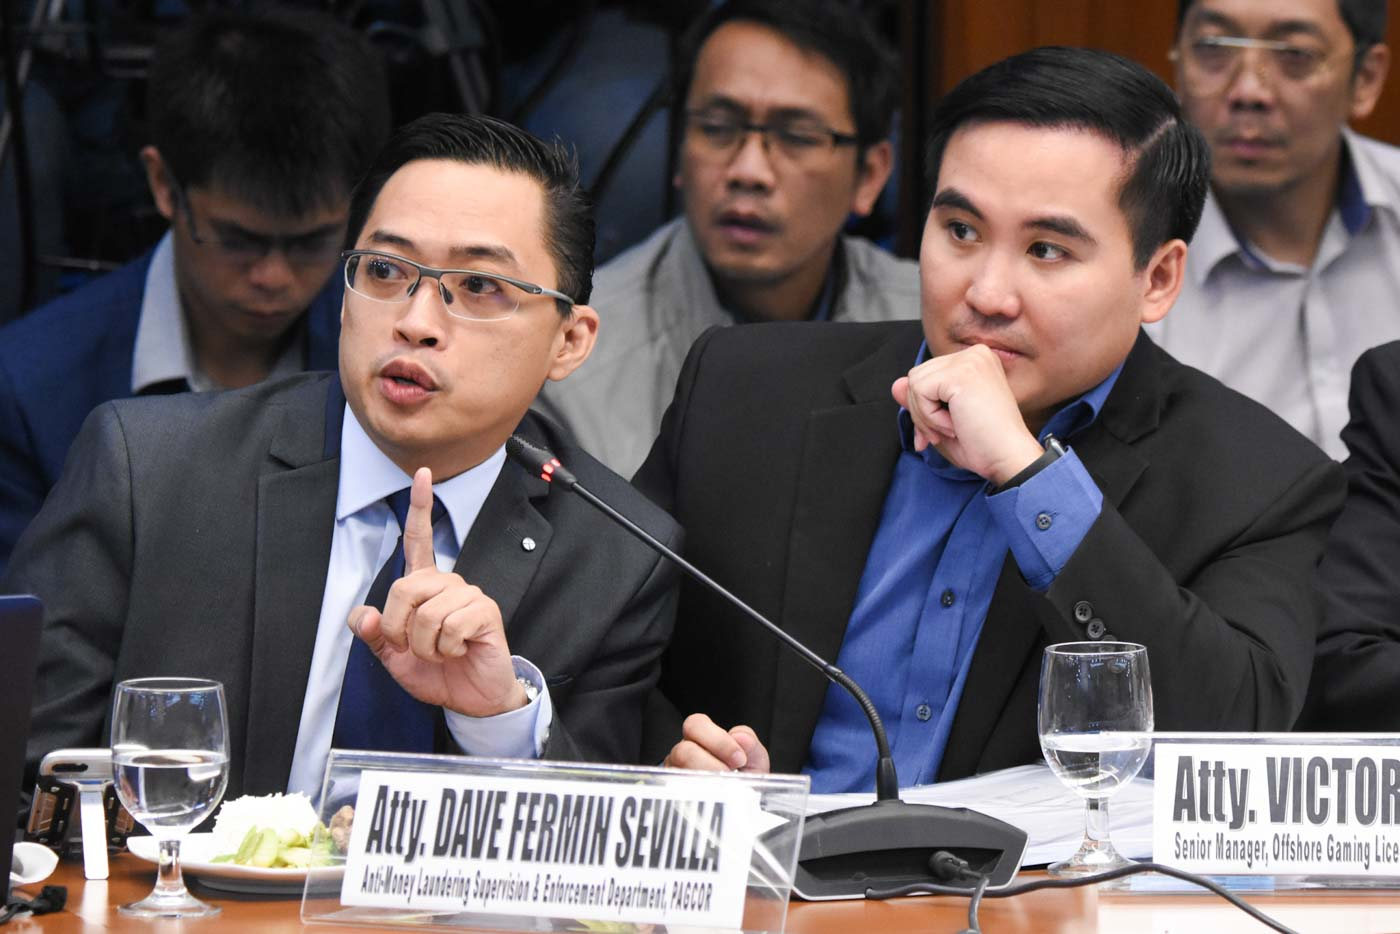 IN LOVE WITH POGO? Pagcor AVP Dave Sevilla (L) and POGO manager Victor Padilla (R) at the Senate hearing on the alleged money laundering linked to POGOs on March 5, 2020. Photo by Angie de Silva/Rappler